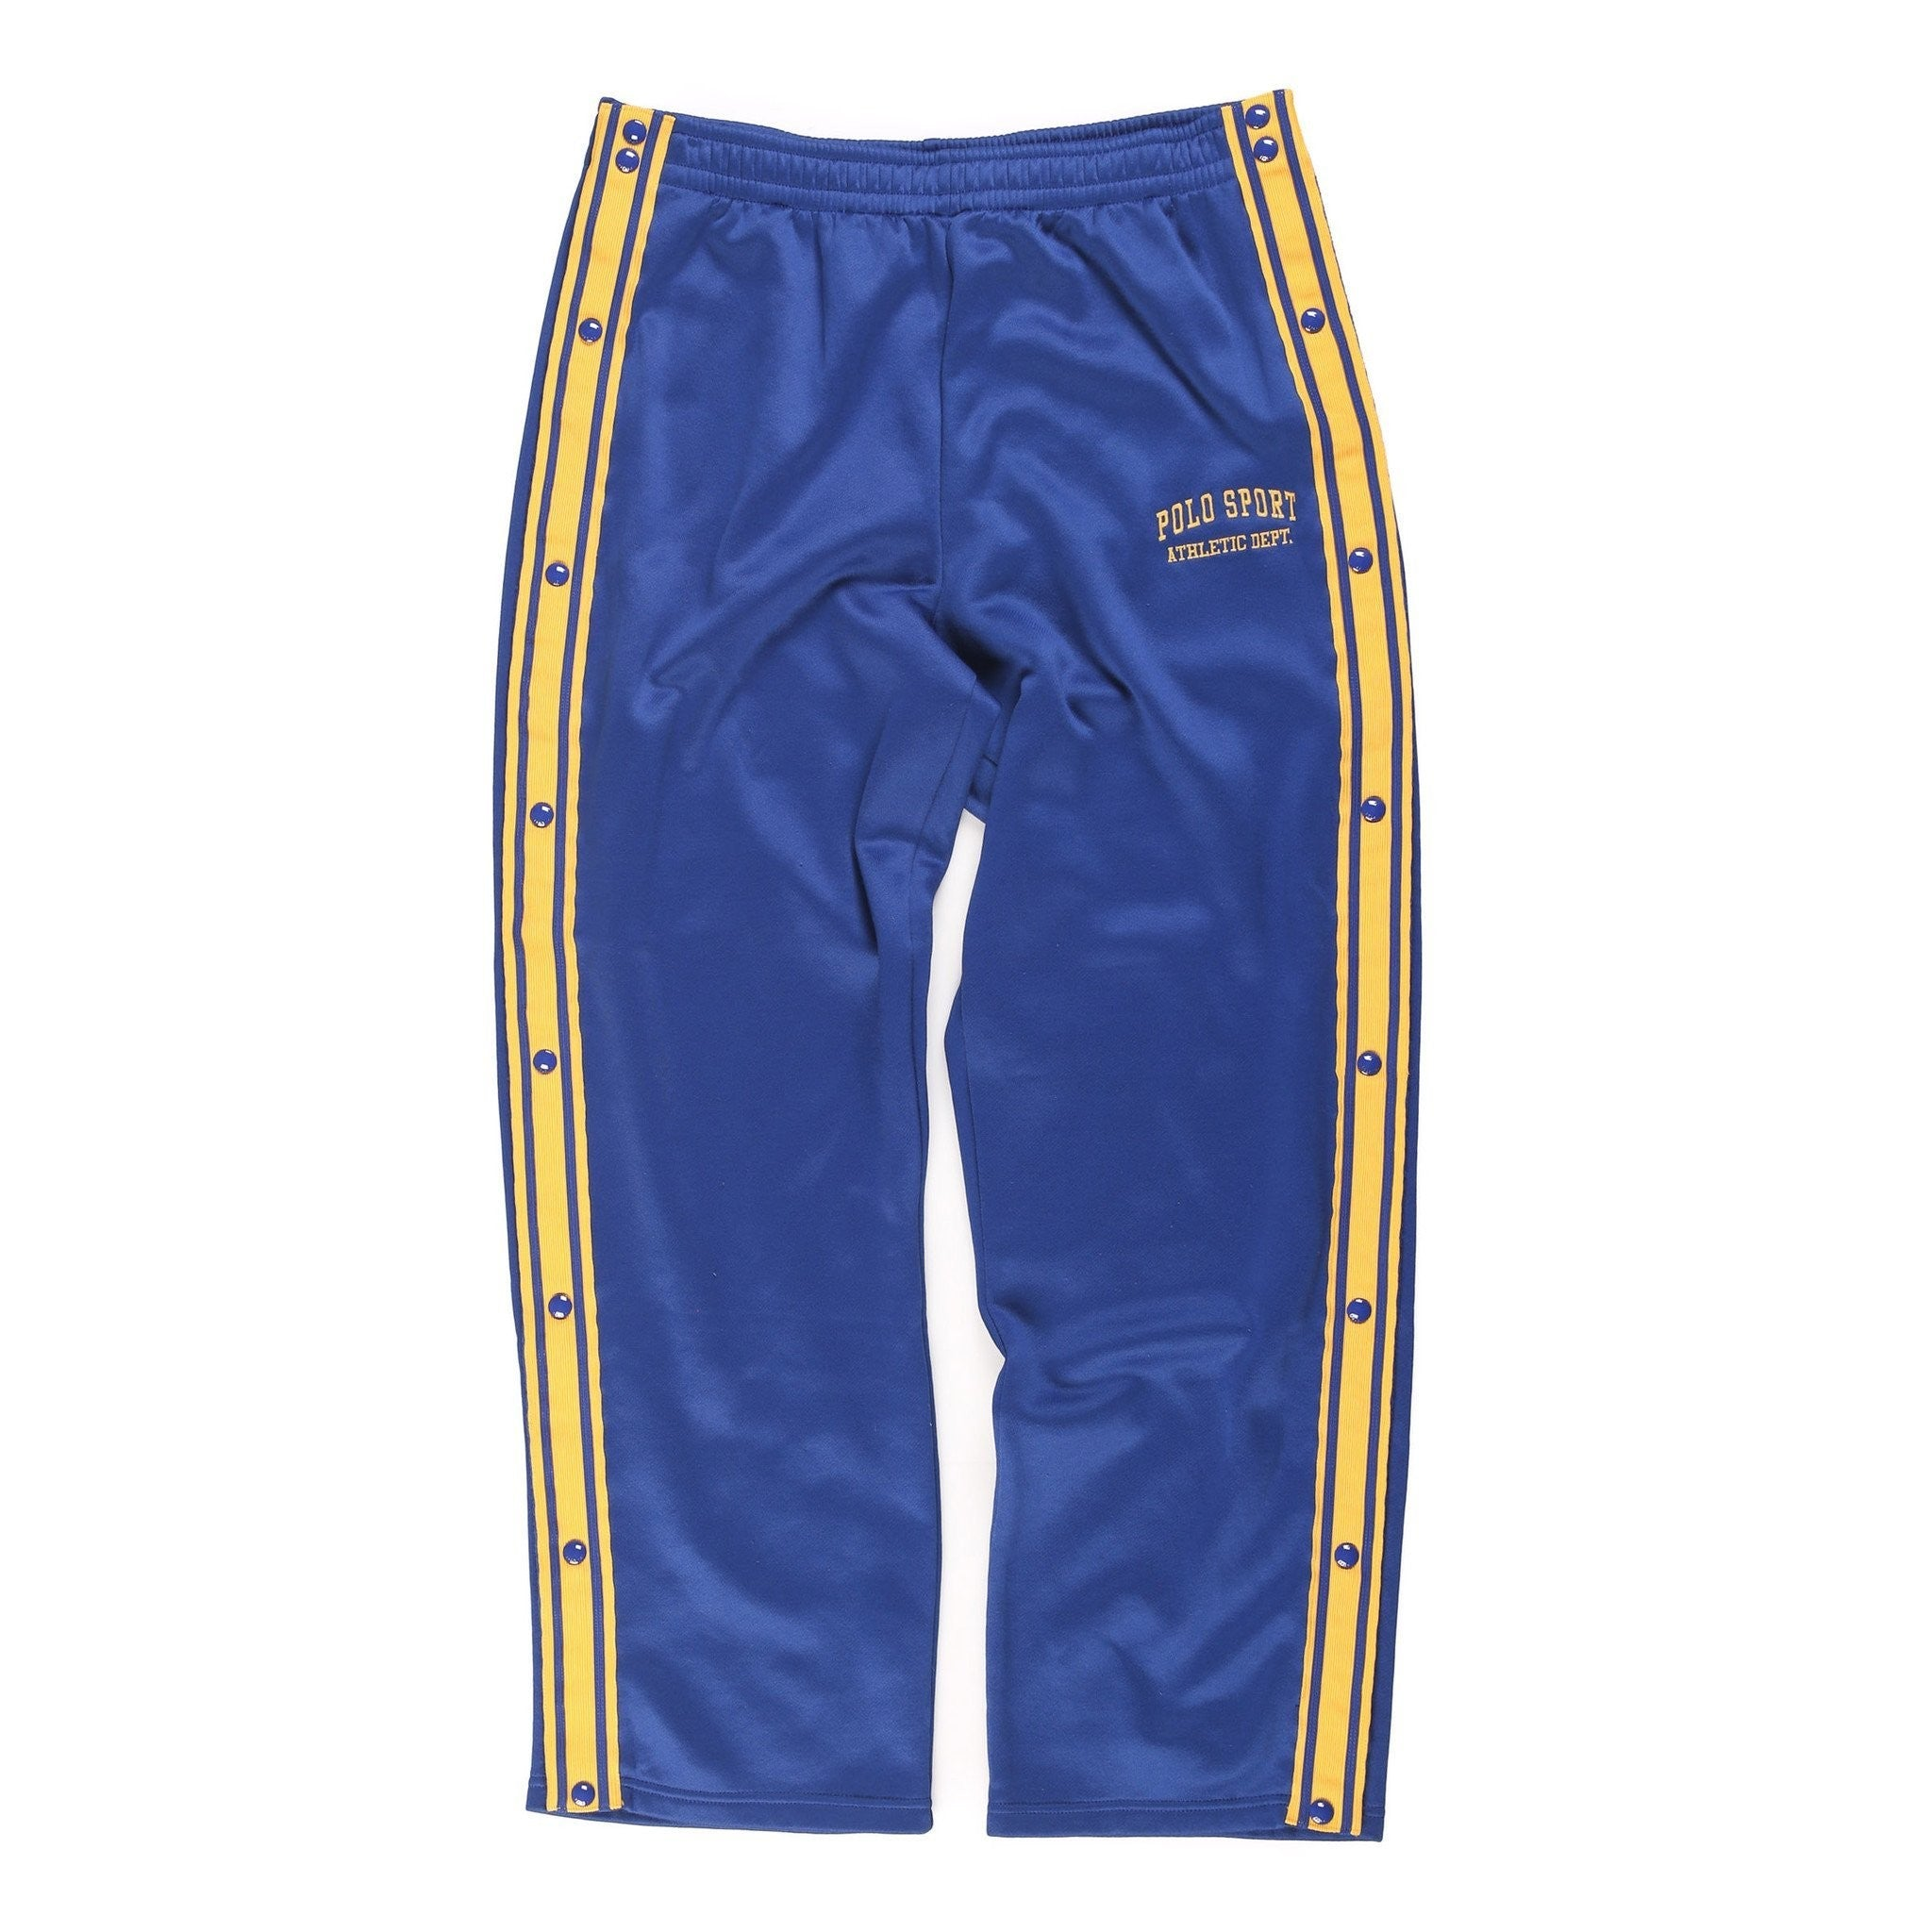 POLO SPORT FIELD H1 ATHLETIC DEPT 22 TRACKPANT // ROYAL BLUE